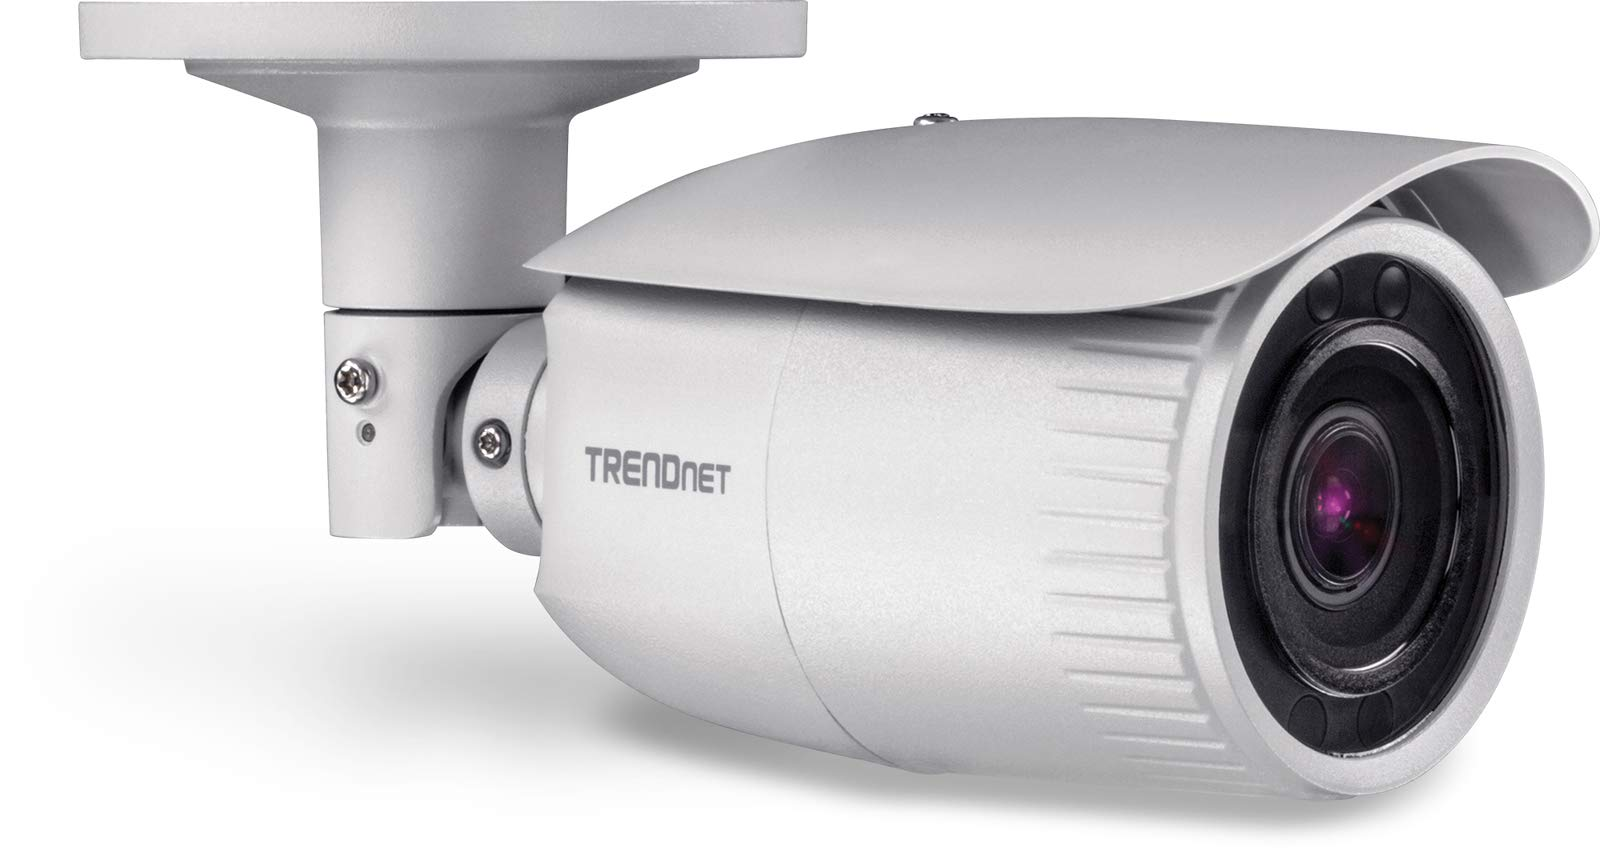 TRENDnet Indoor/Outdoor 4 MP, Motorized Varifocal PoE IR Network Camera, Auto-Focus, Optical Zoom, Digital WDR, Night Vision up to 98ft, IP66 Rated Housing, ONVIF, IPv6, TV-IP344PI